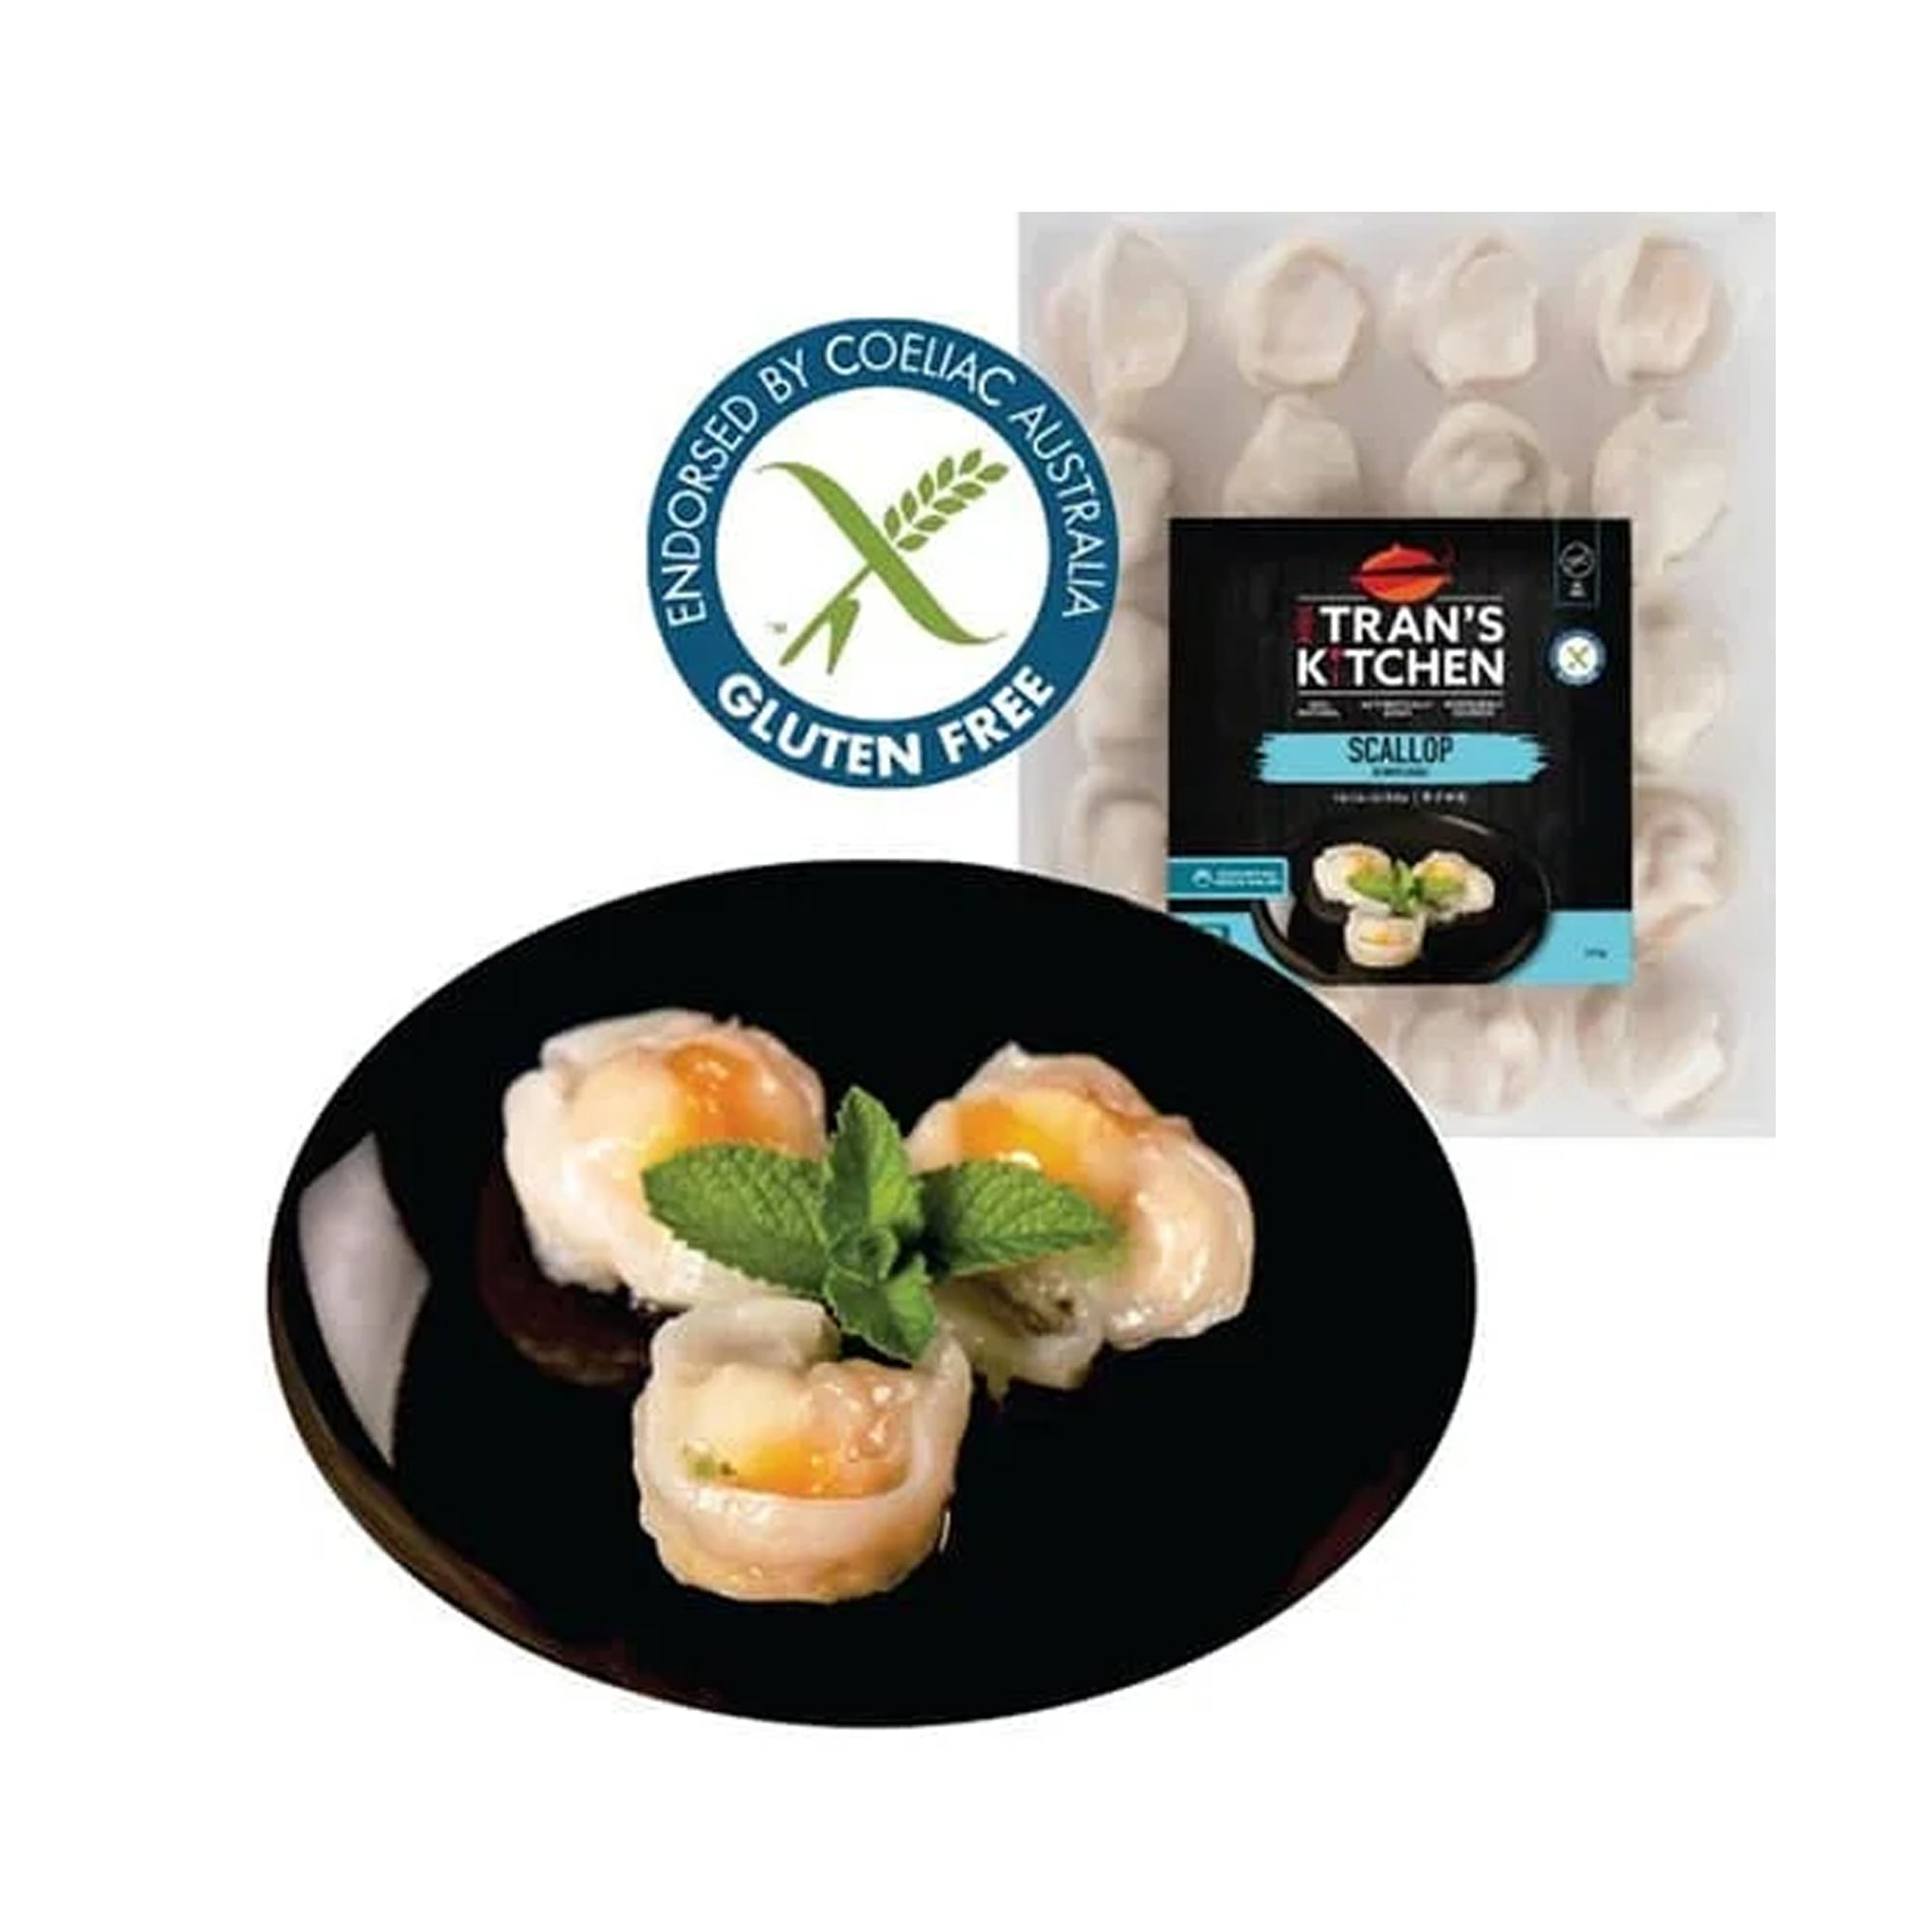 Mrs Trans Dumplings - Scallop & Prawn 500g